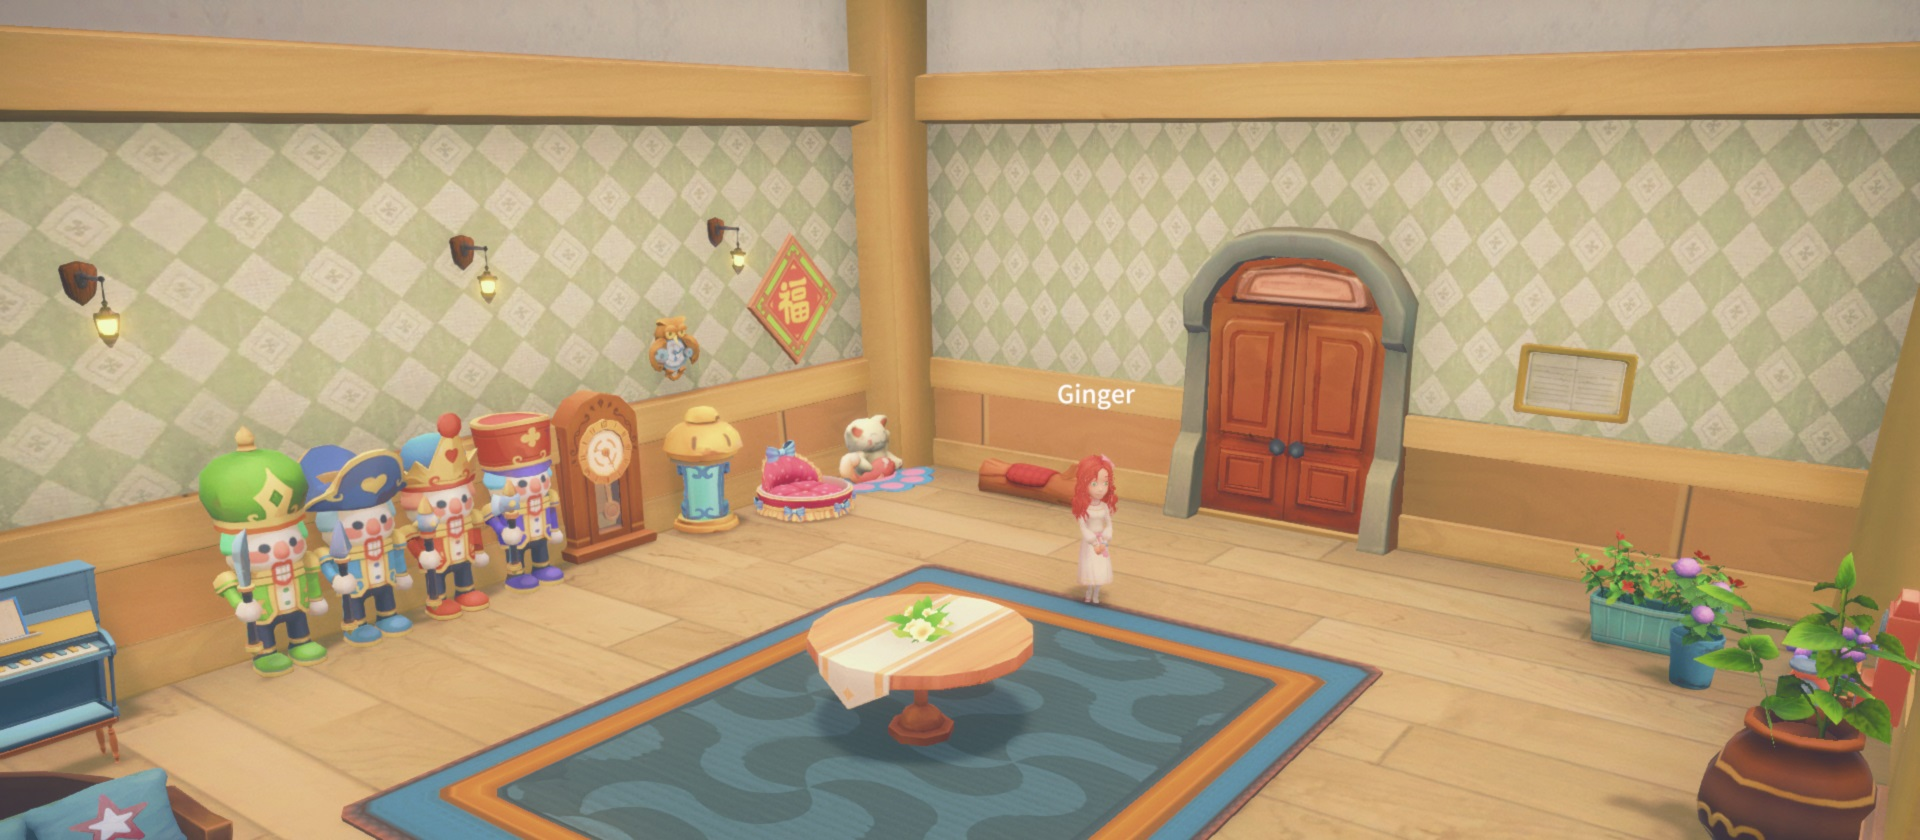 Steam Community :: Guide :: My Time at Portia: an extensive guide